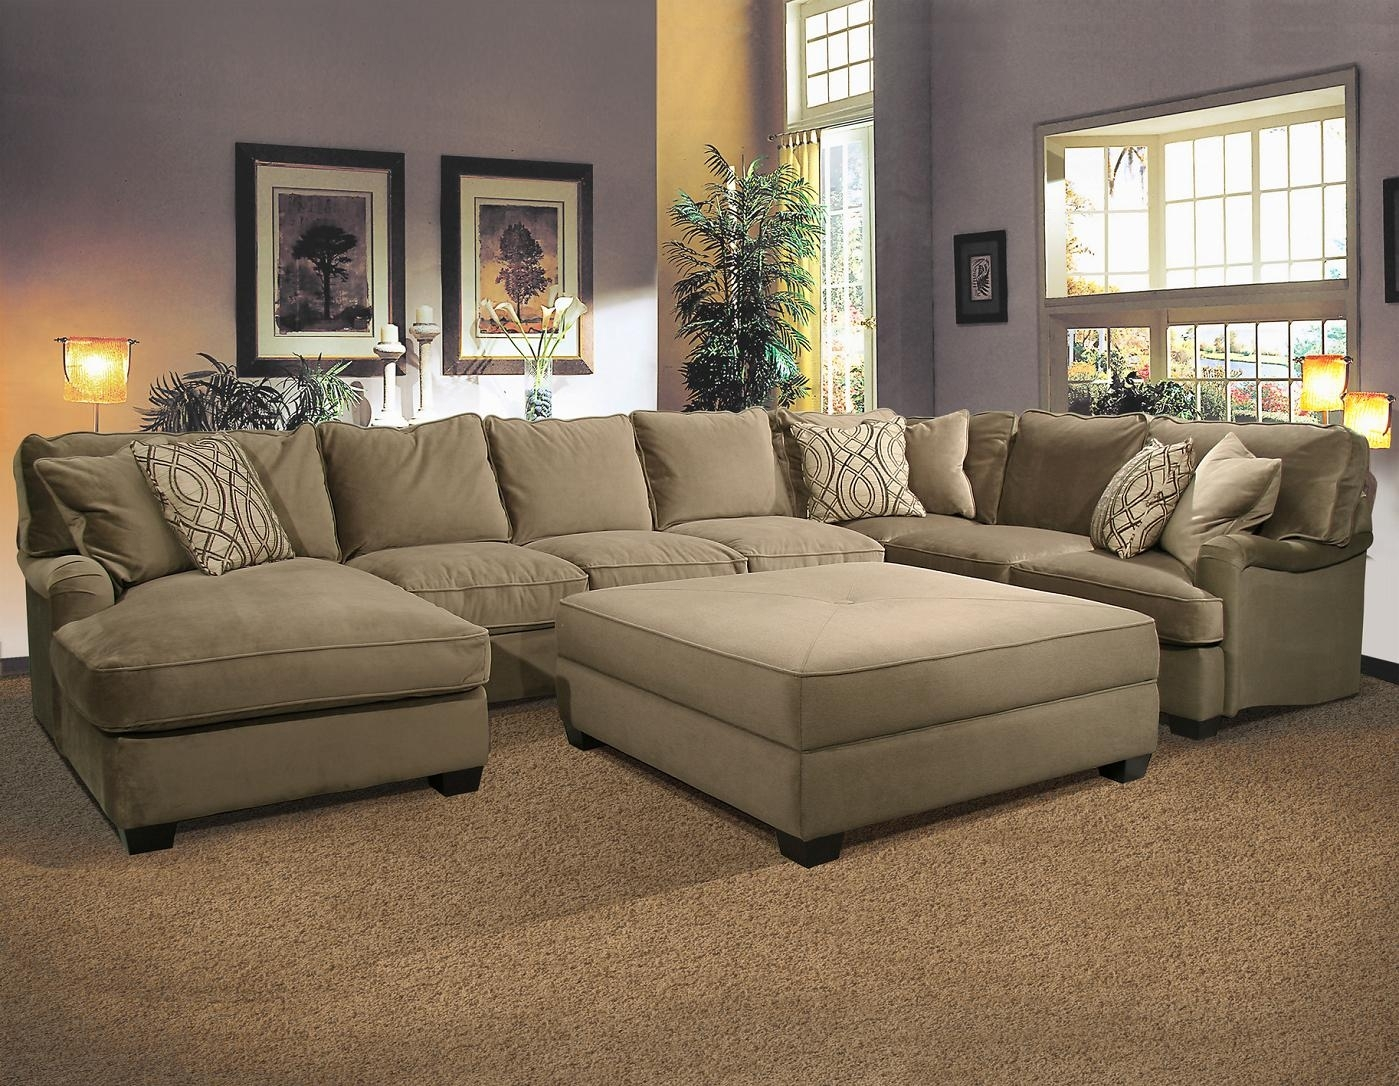 Bostonian Sectional Sofafairmont Seating | Home | Pinterest with regard to Sofas With Large Ottoman (Image 2 of 10)